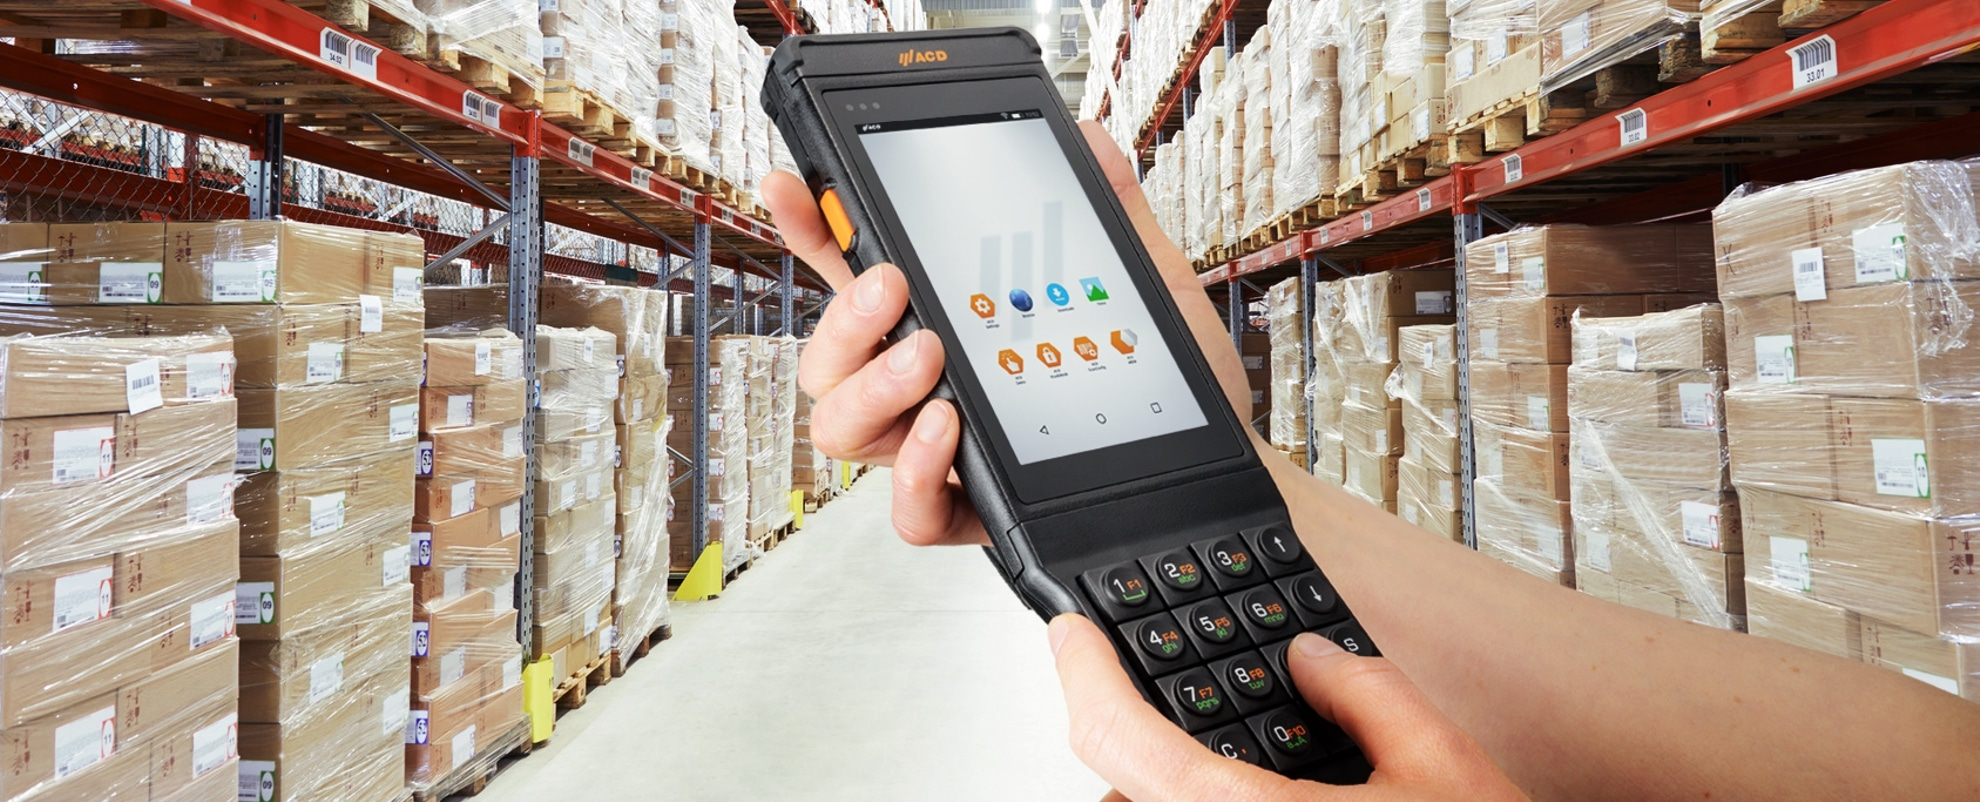 M2SmartSE with M2Key16 logistics in warehouse